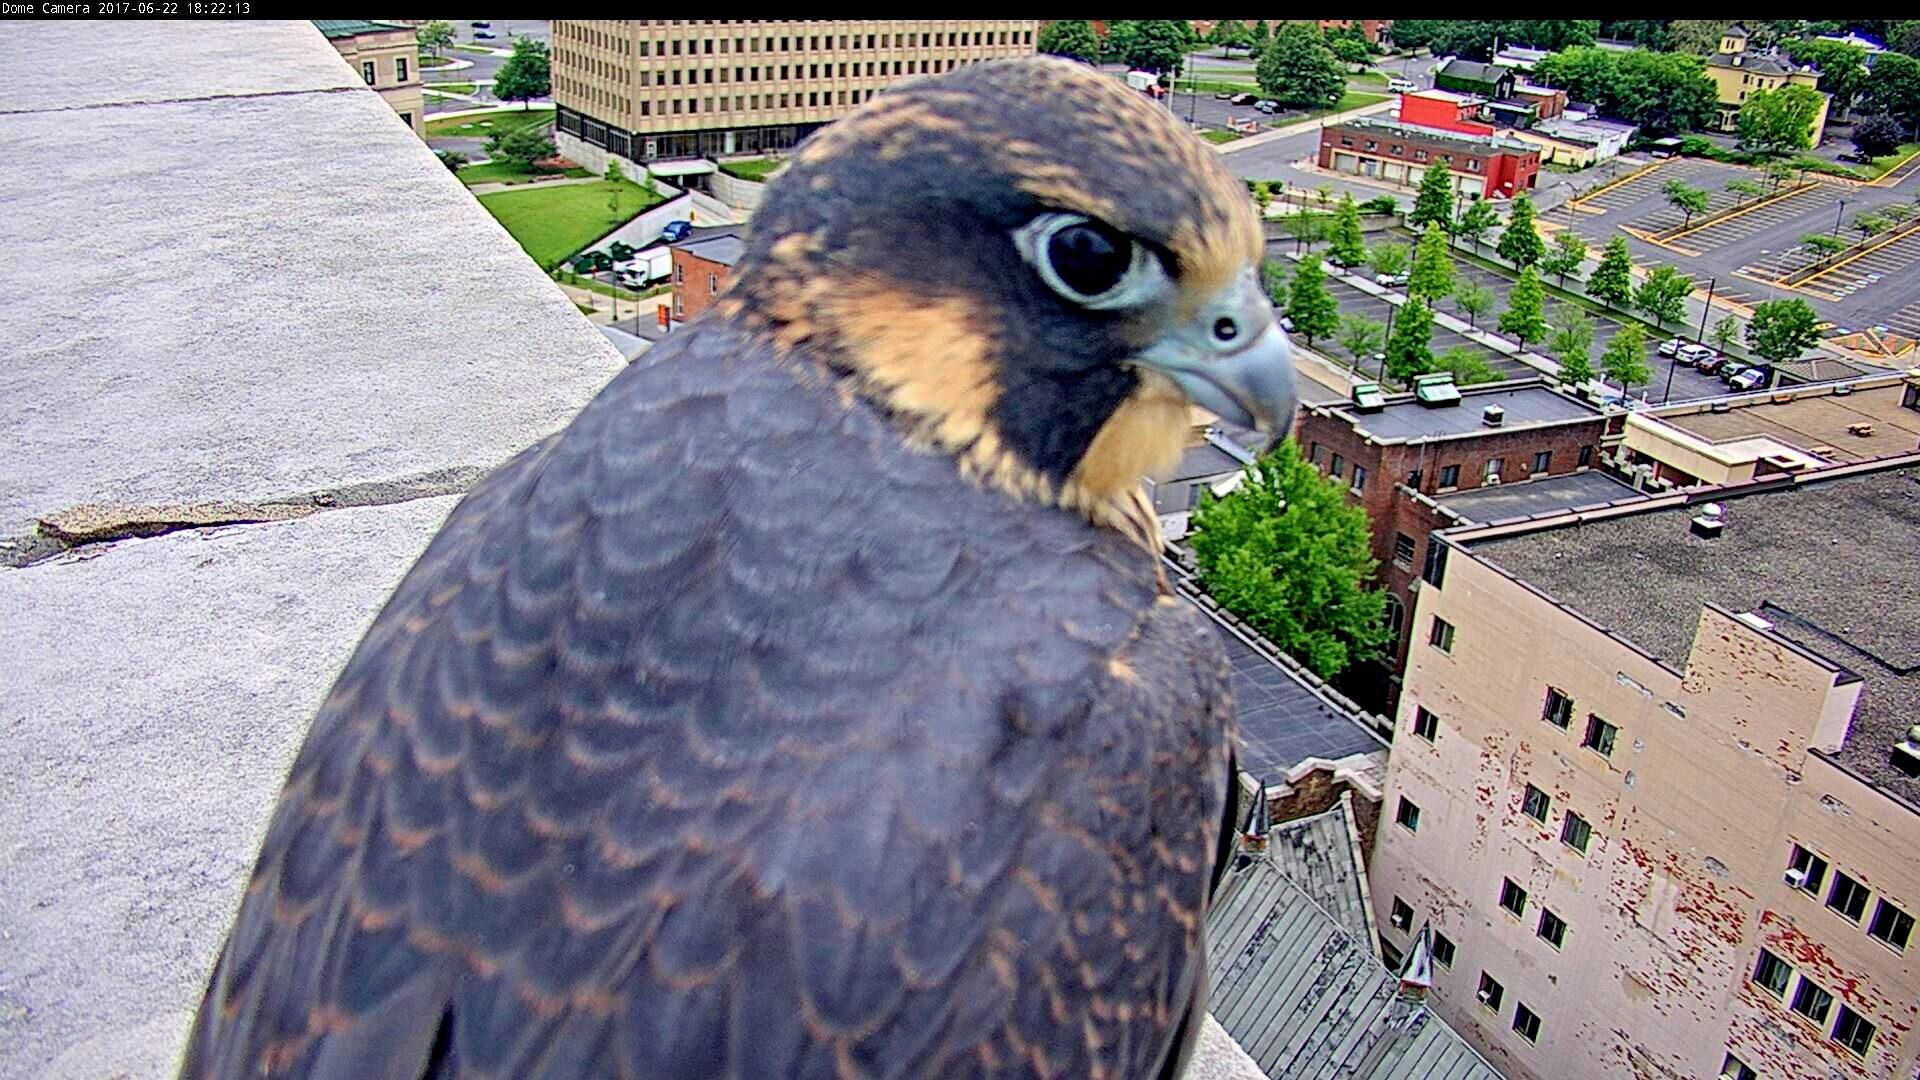 Spirit's first flight is to the roof of the ADK Bank and she perches right next to our PTZ cam